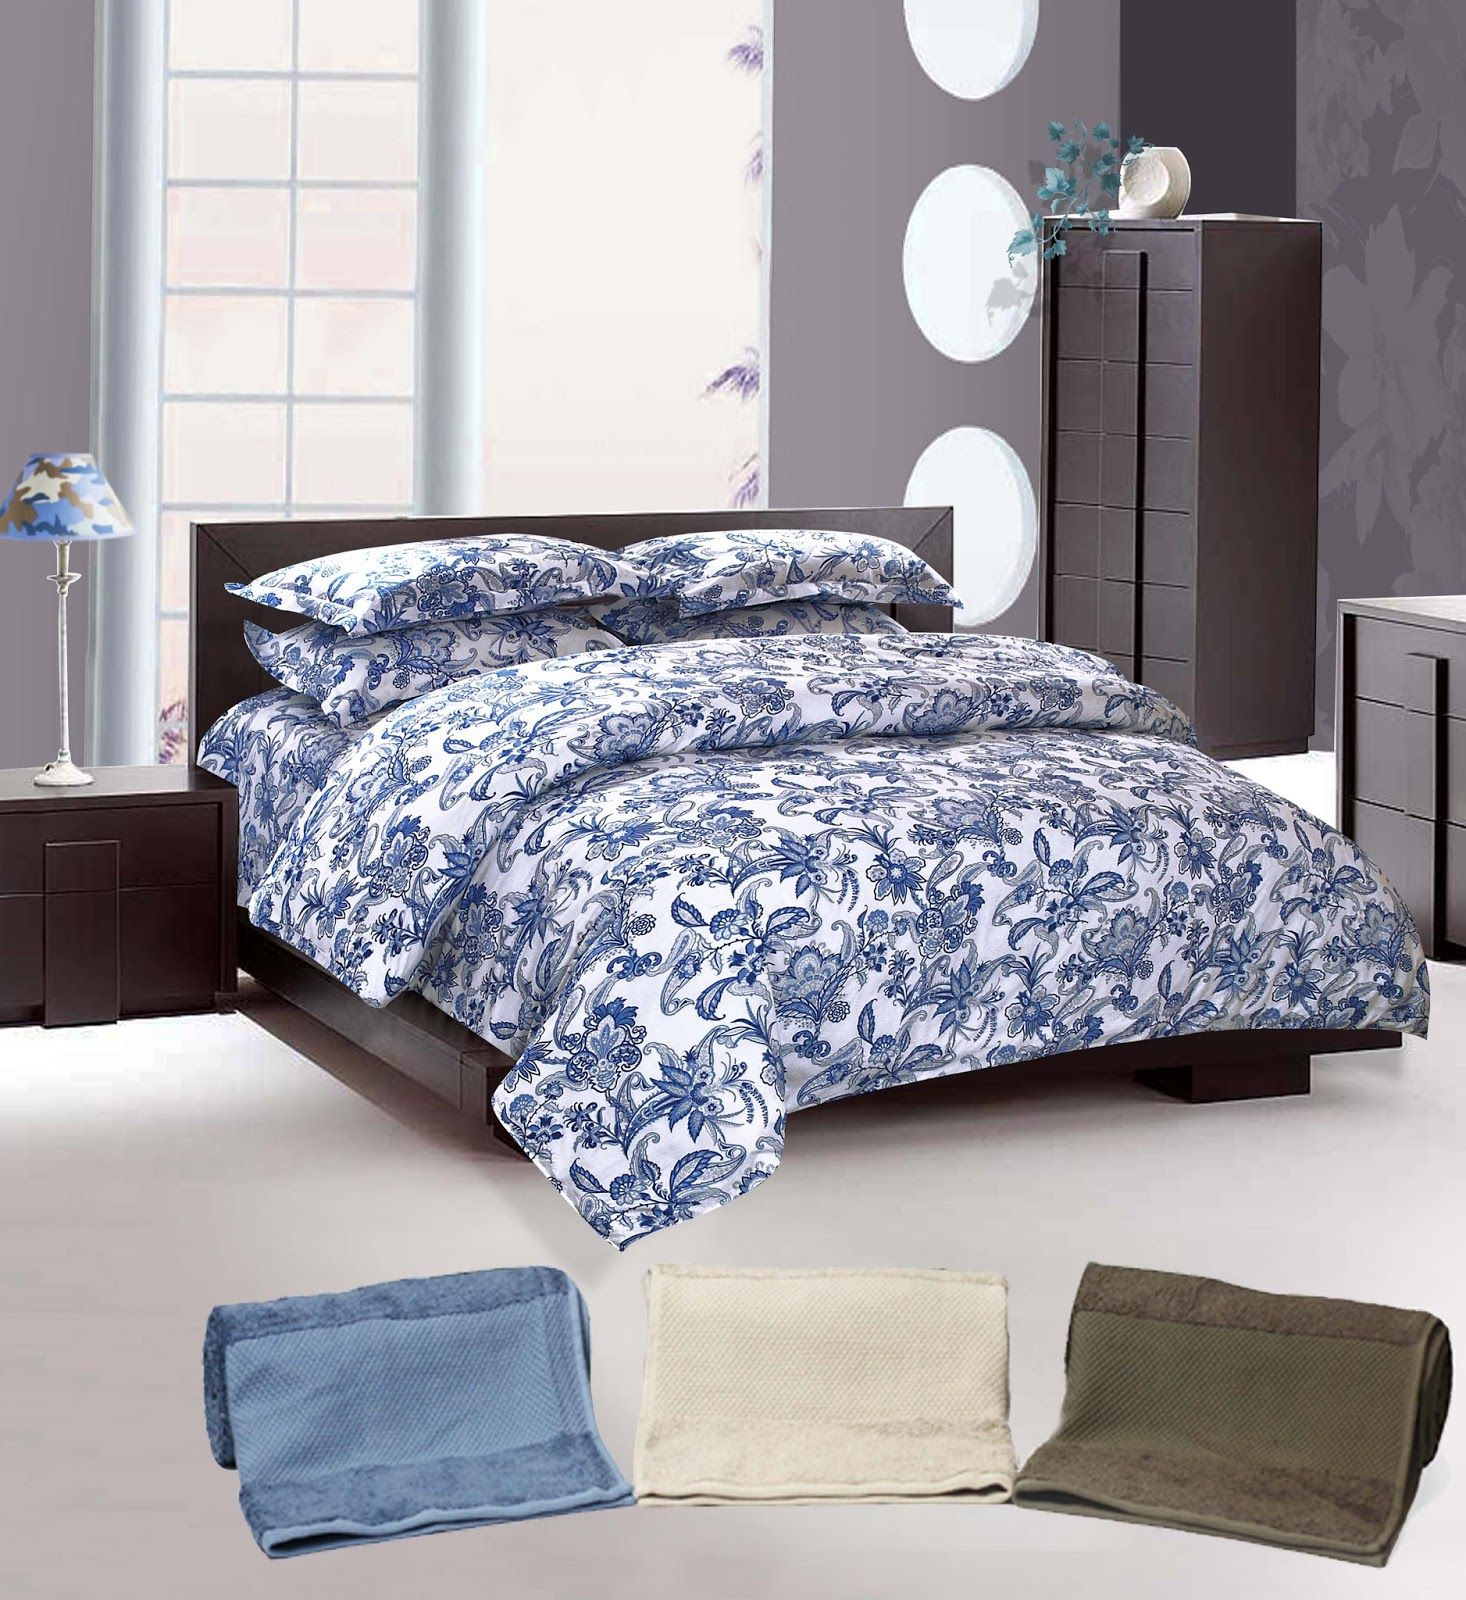 Luxury Bed And Bath Linen